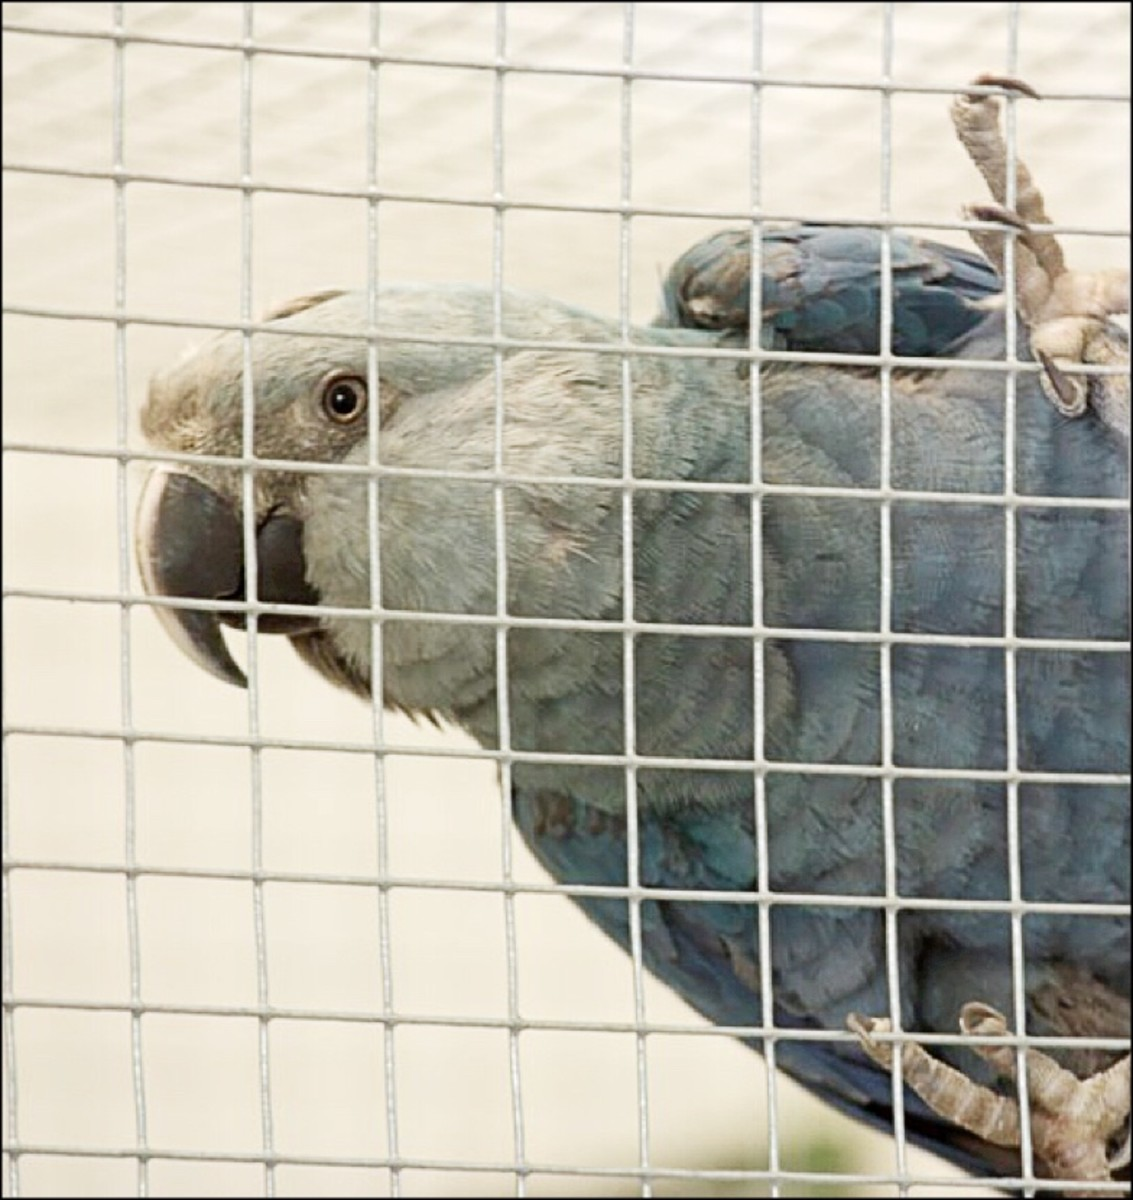 48 Facts About the Spix's Macaw: Extinct in the Wild